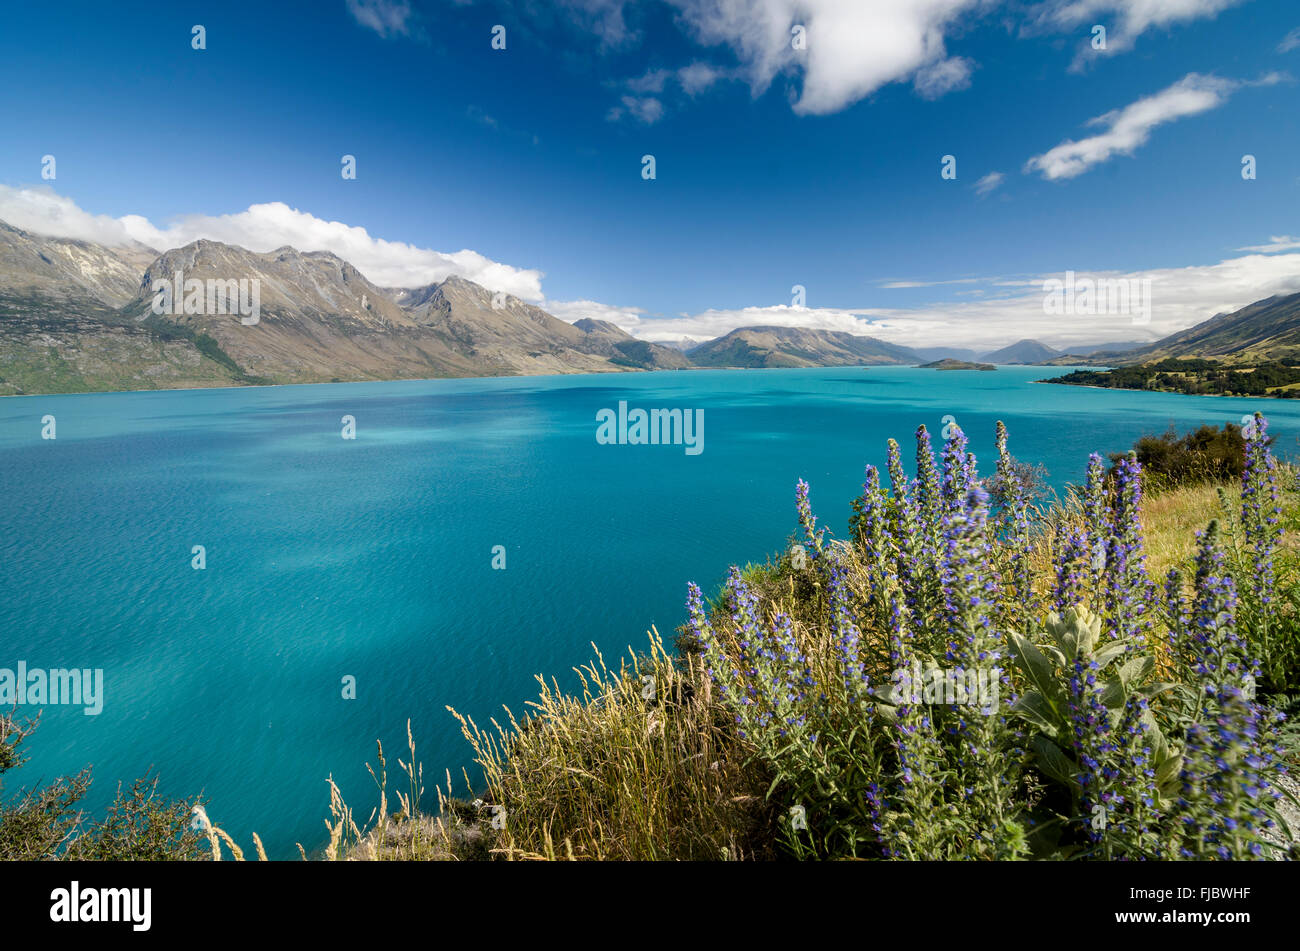 Turquoise Lake, Lake Wakatipu, Remarkables Otago mountains behind, near Queenstown, Southern Province, New Zealand - Stock Image